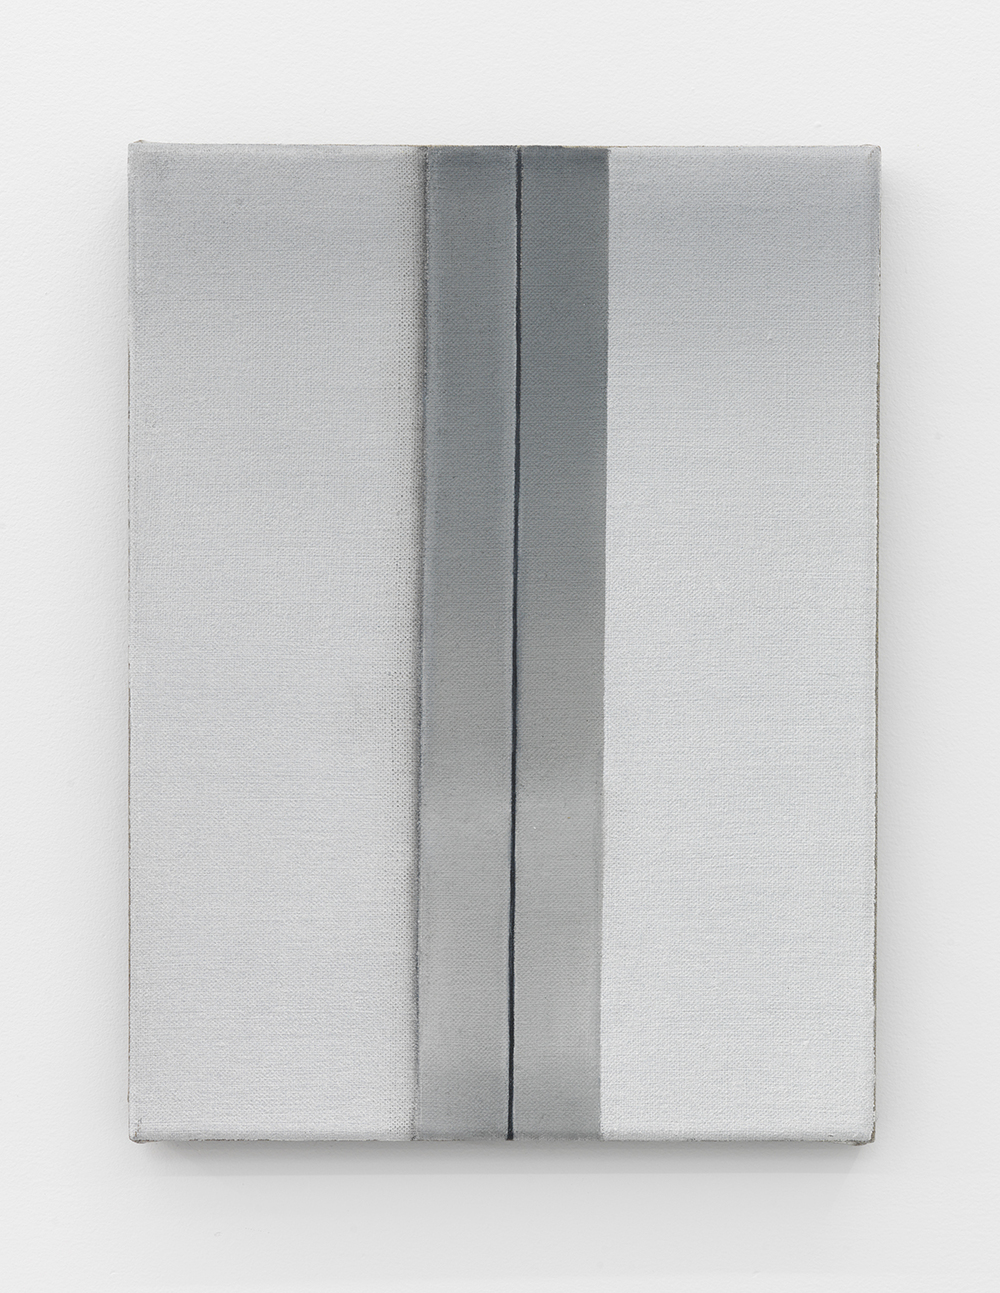 Dana Powell Untitled (lift), 2015 Oil on linen 12 x 9 inches